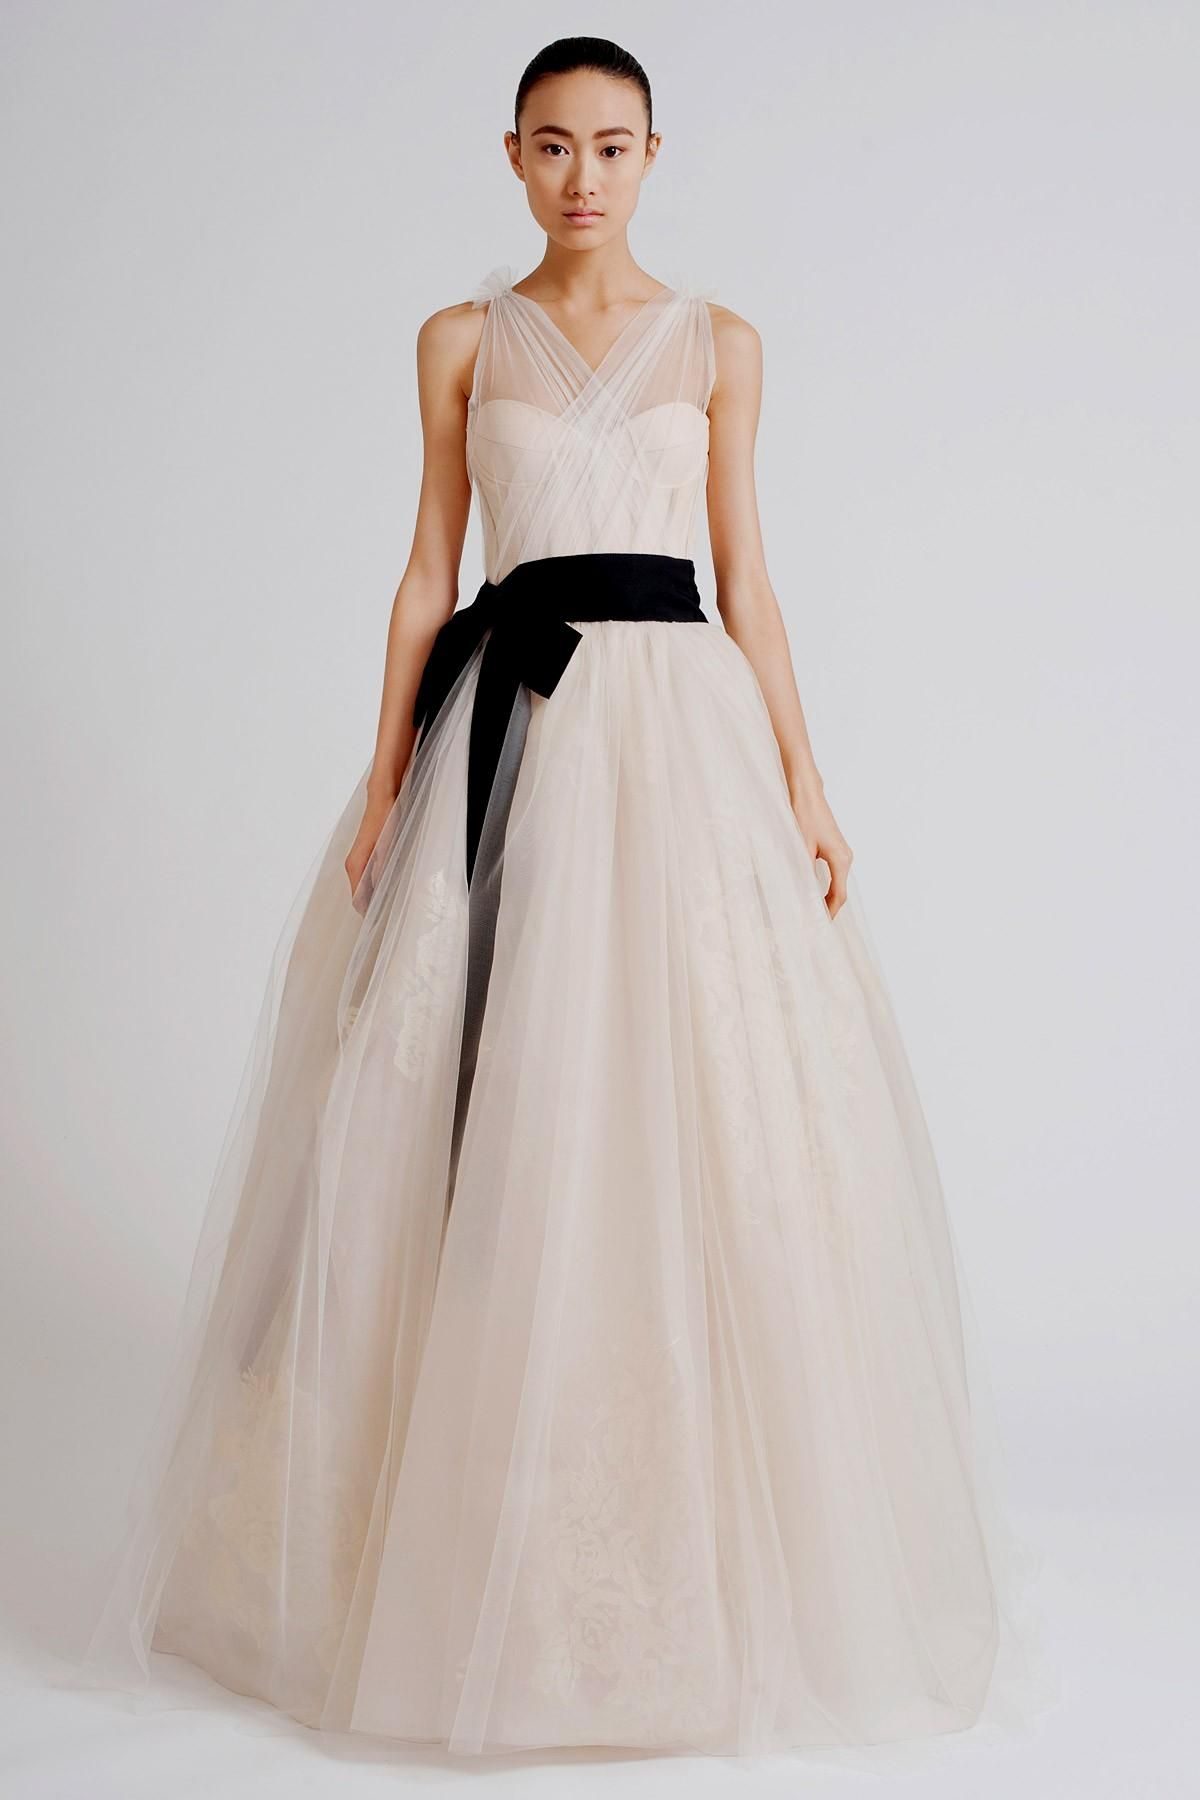 Image result for vera wang empire waist wedding dresses | Wedding ...